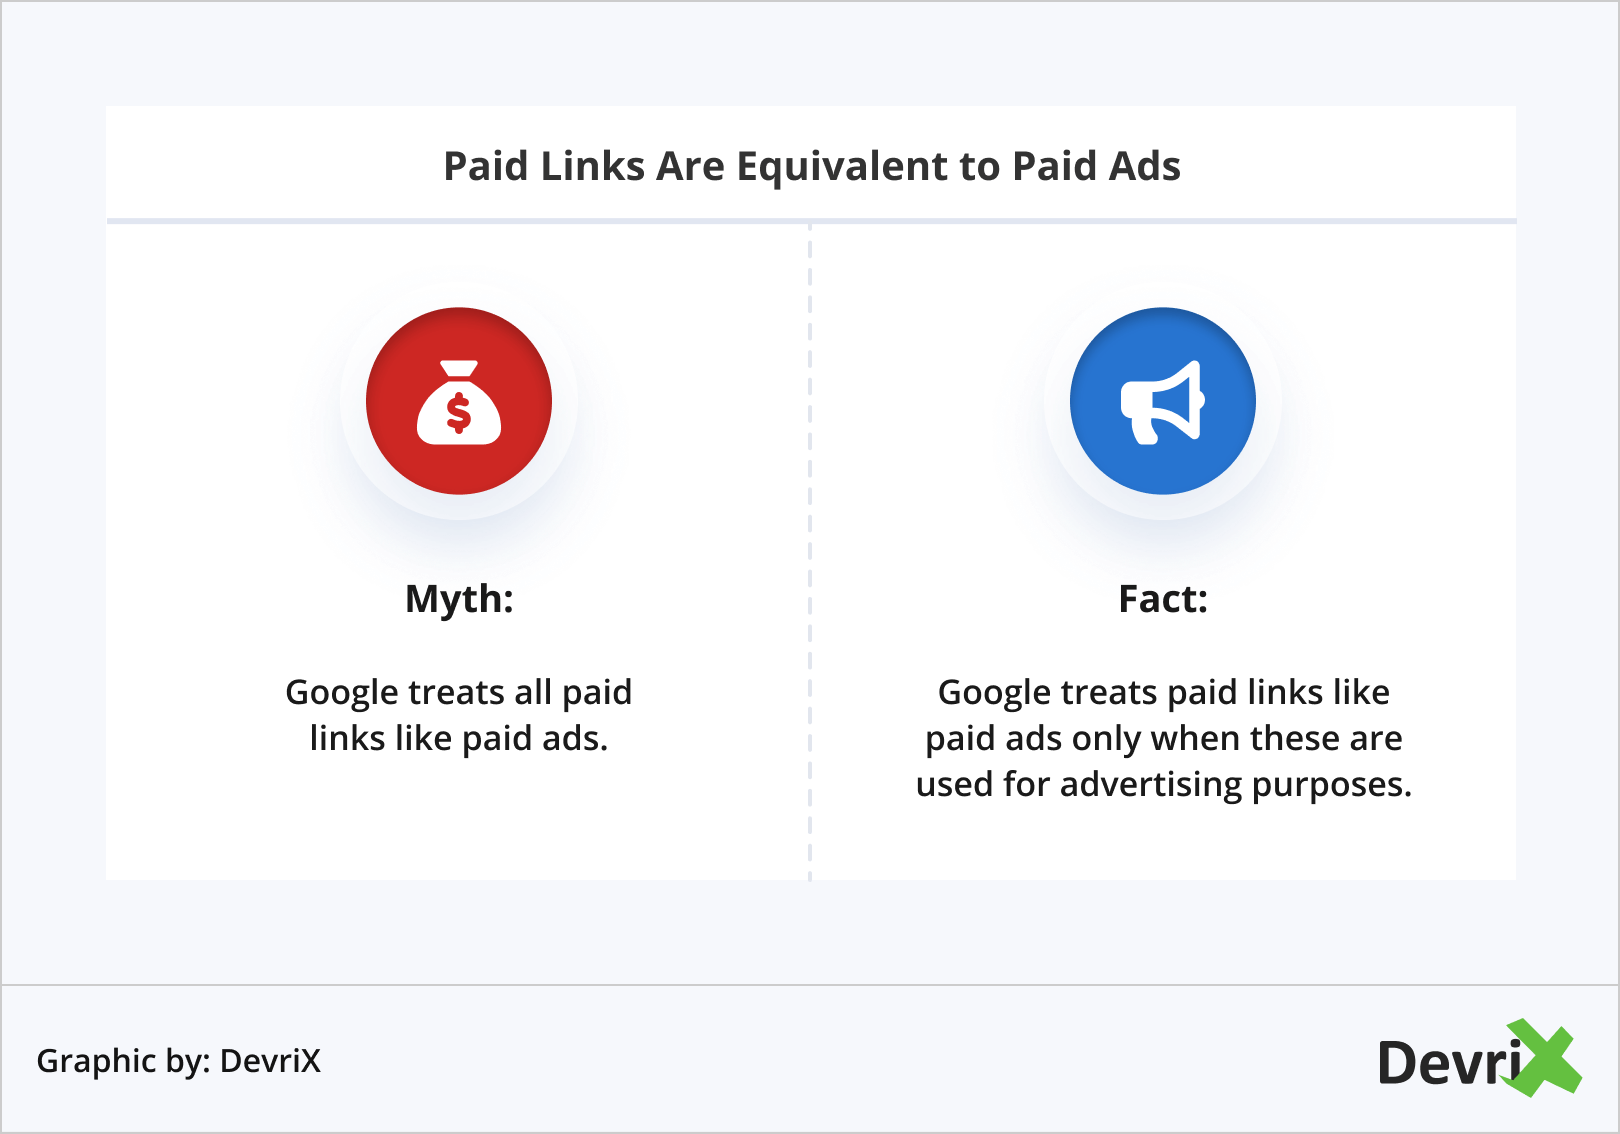 Paid Links Are Equivalent to Paid Ads